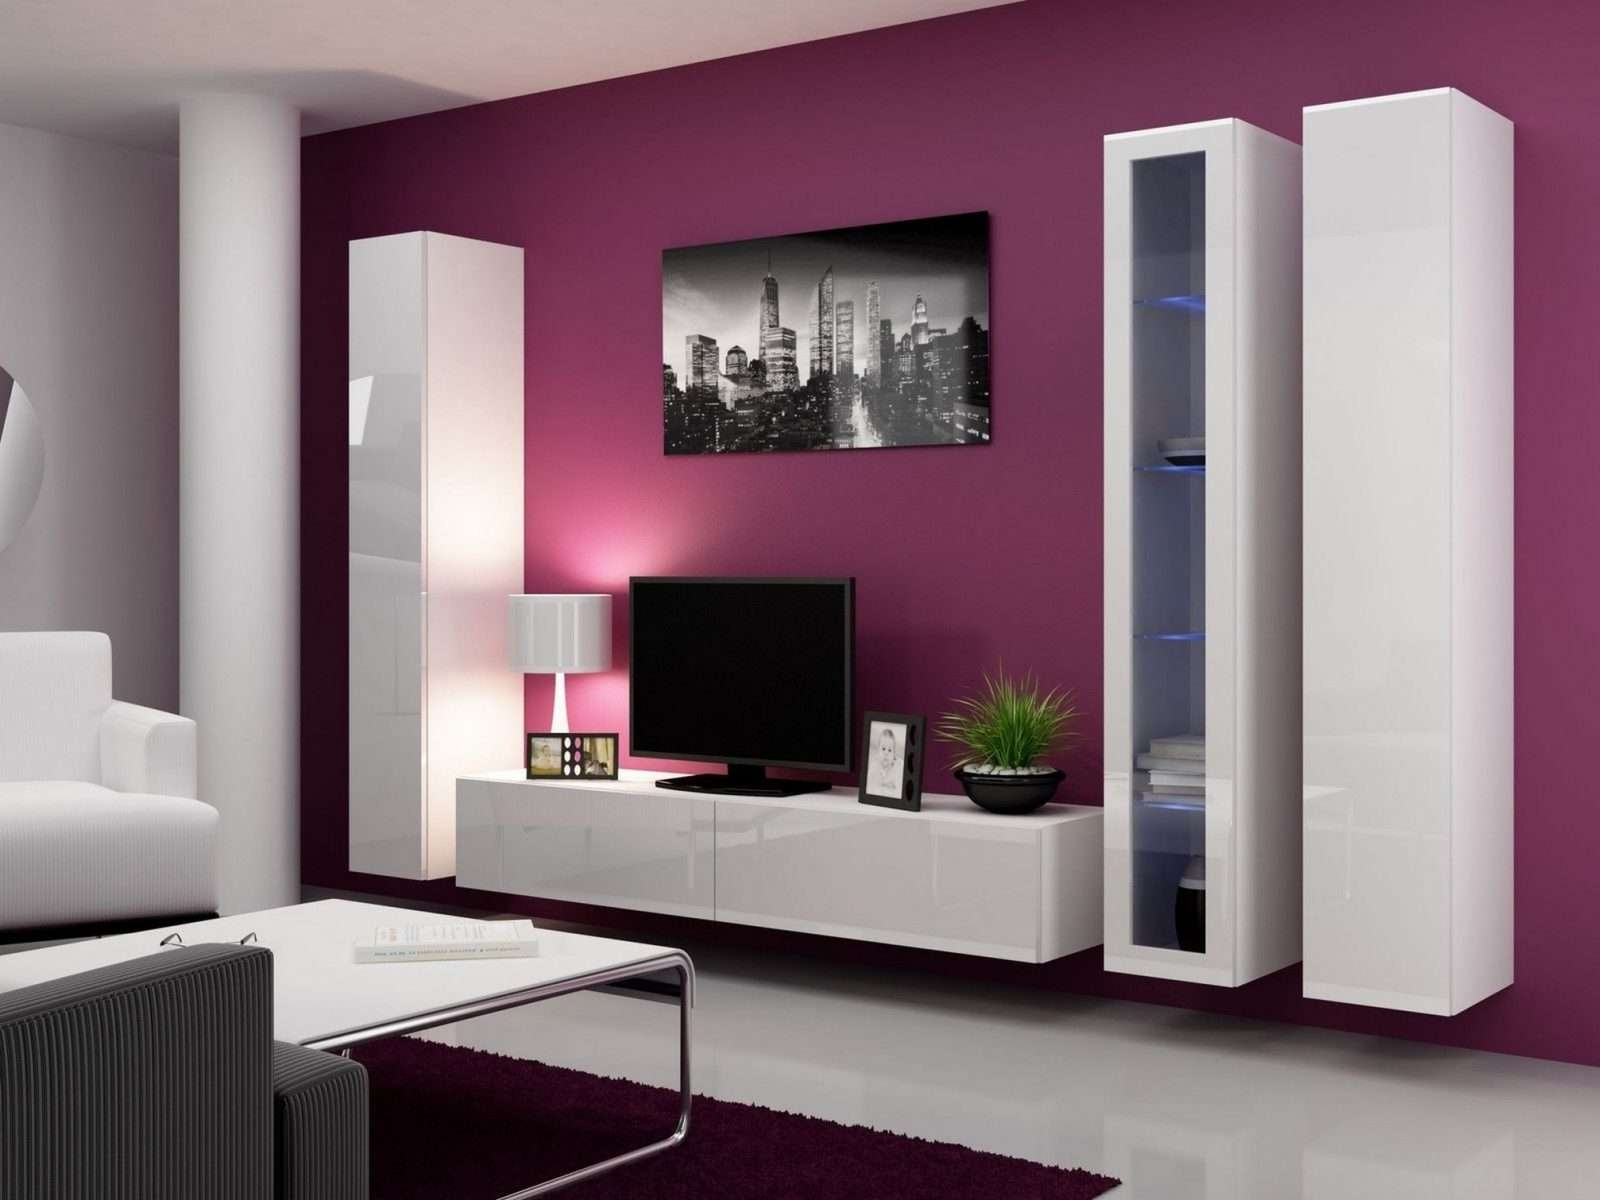 Wall Mounted Media Cabinets Furniture Interior Contemporary White Intended For Modern Wall Mount Tv Stands (View 12 of 15)